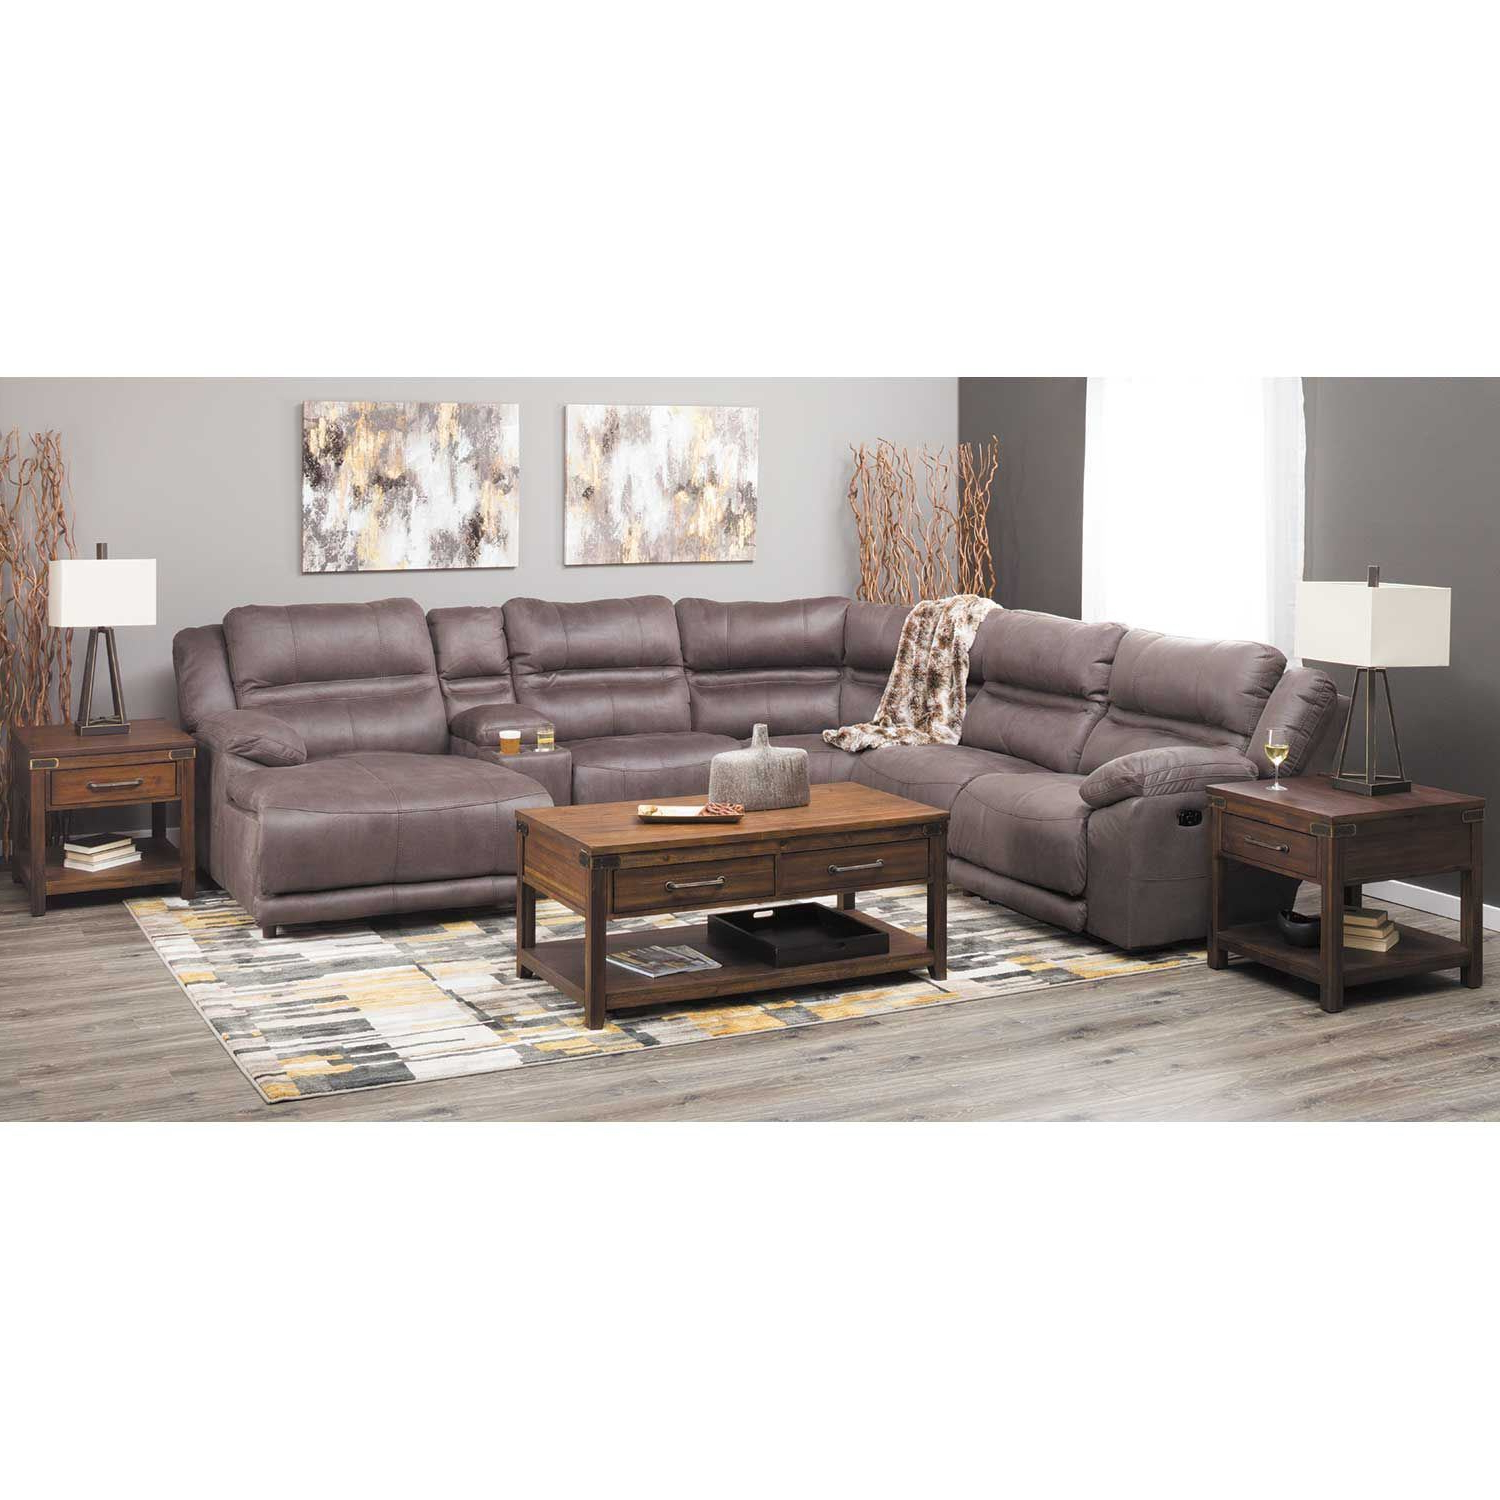 Famous Braxton 6 Piece Power Reclining Sectional With Adjustable Headrest With Jackson 6 Piece Power Reclining Sectionals (Gallery 17 of 20)